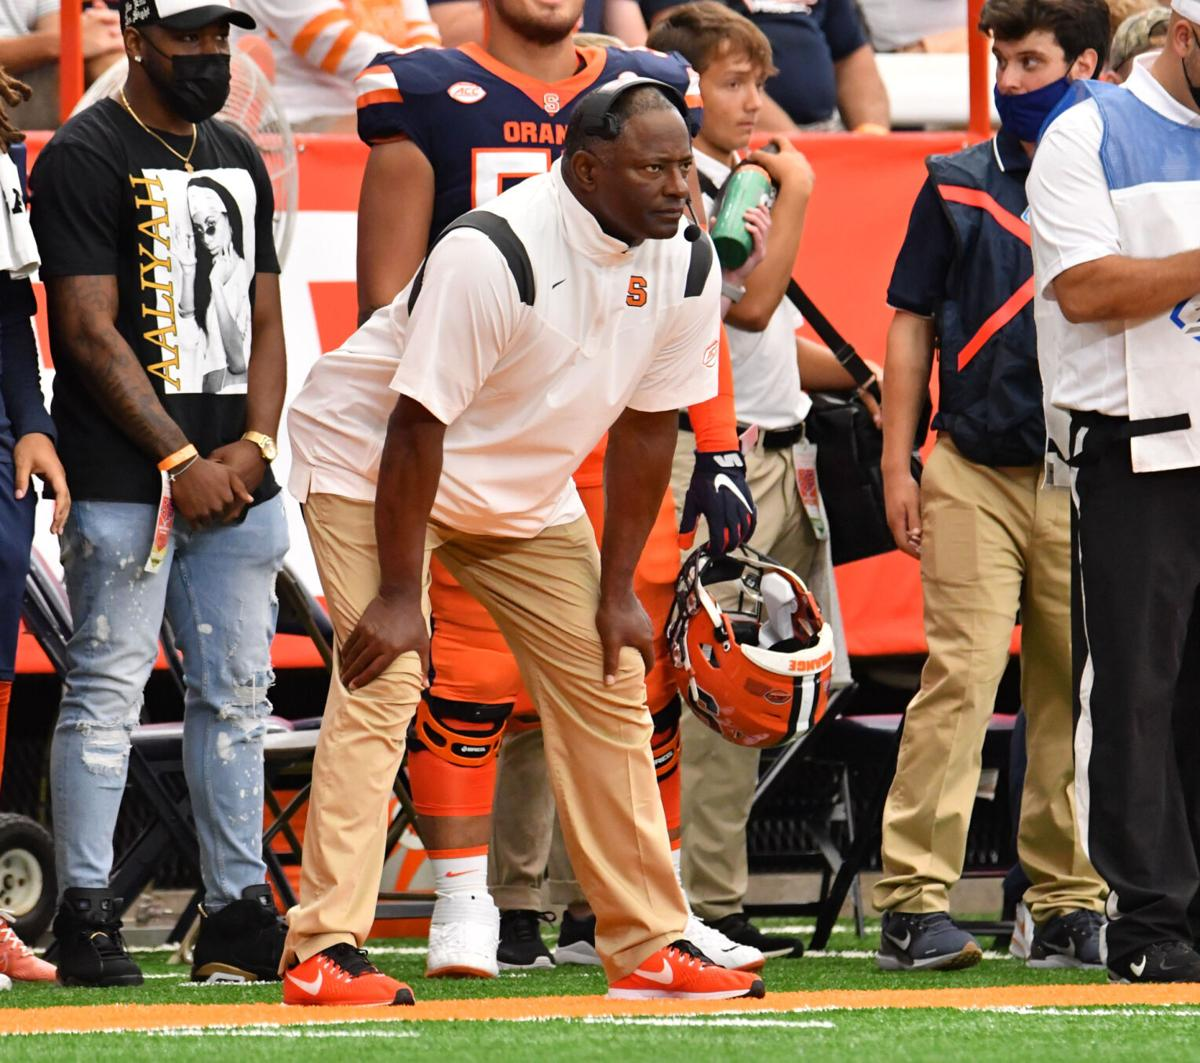 Babers back to evaluate his QBs